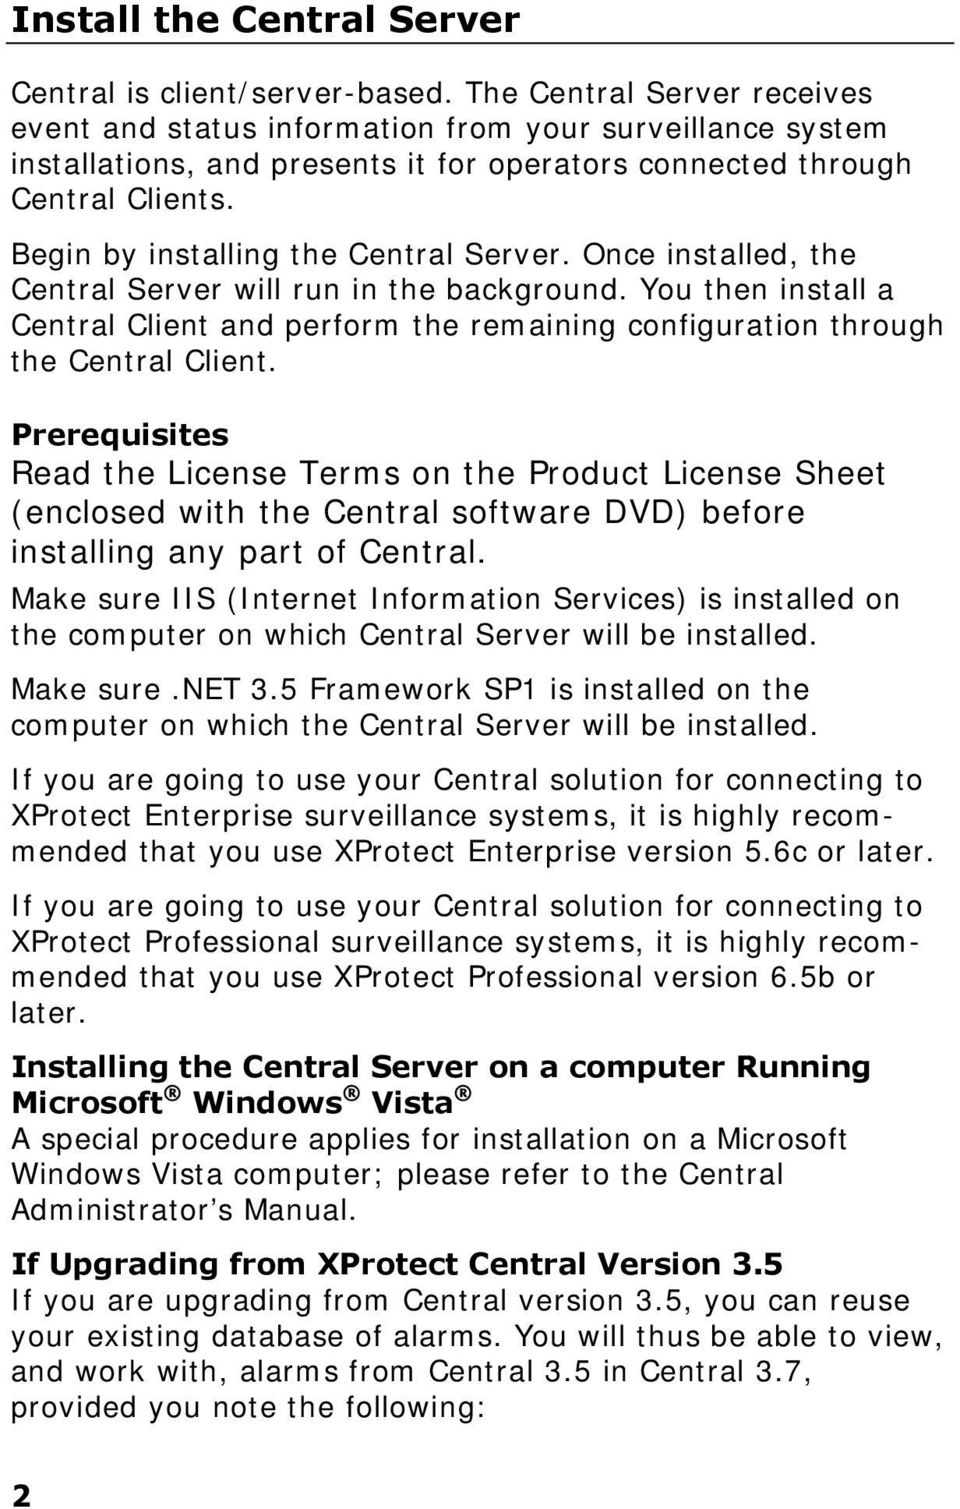 Begin by installing the Central Server. Once installed, the Central Server will run in the background.